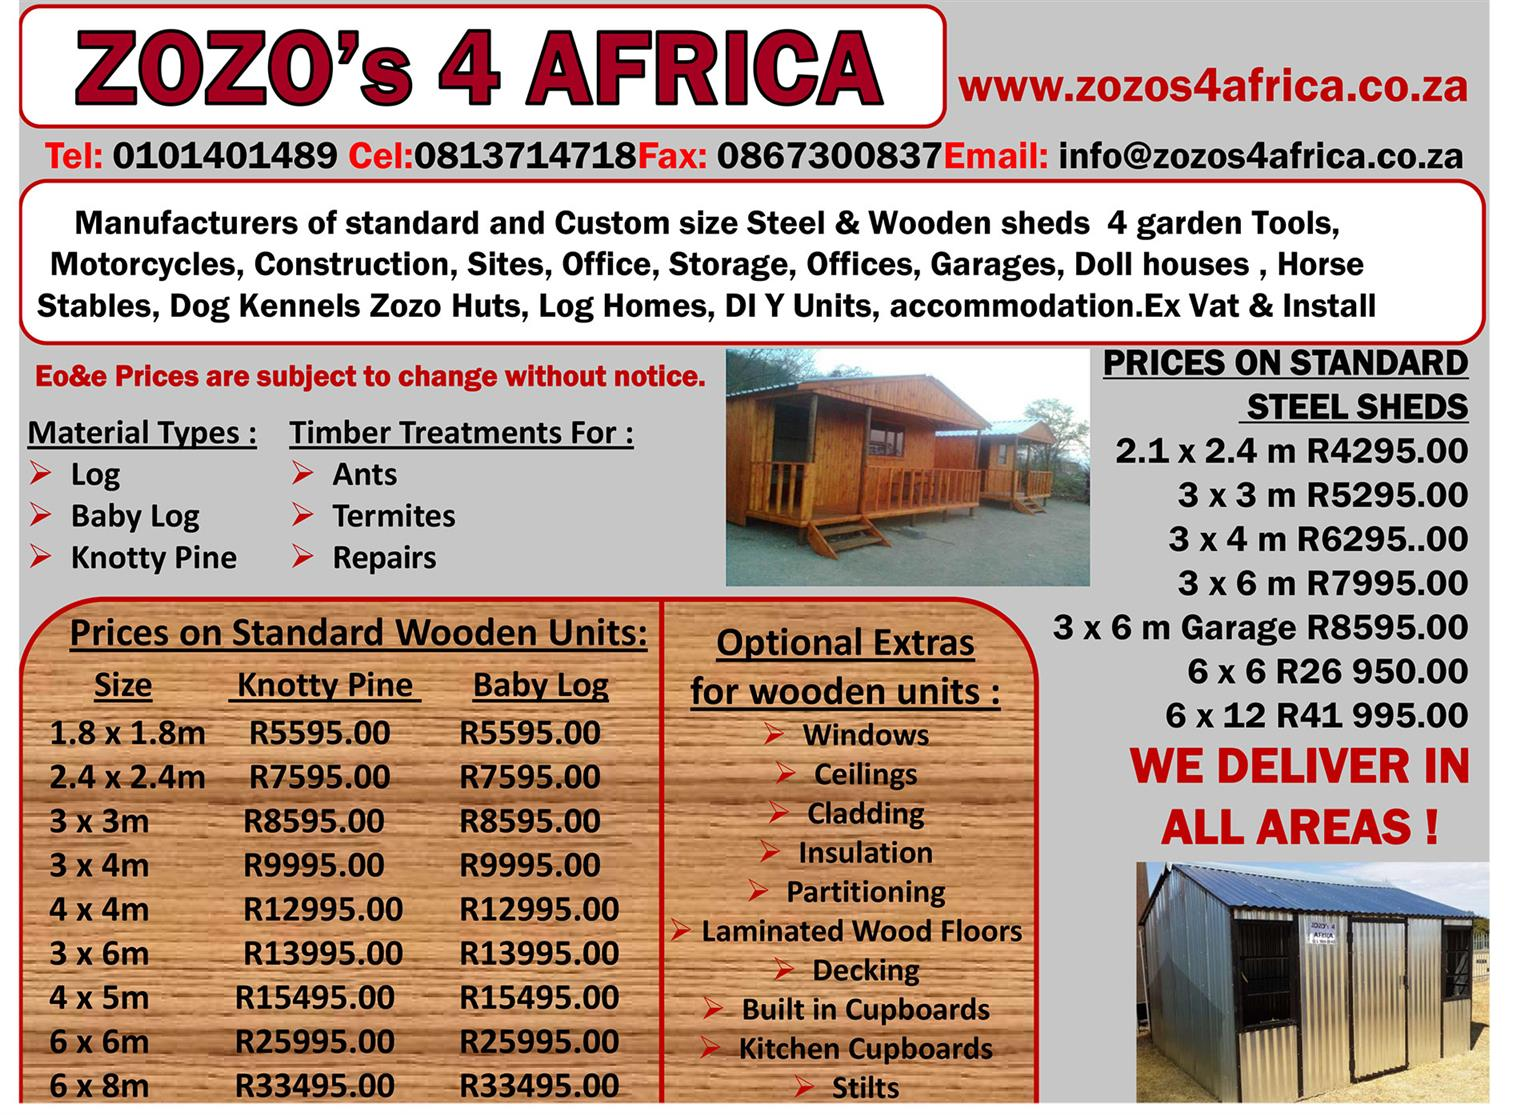 Warehouse  + large 4 bed house  Benoni   For sale or Rent  500 sq or 1000 sq,sheds  & Wendys,tool